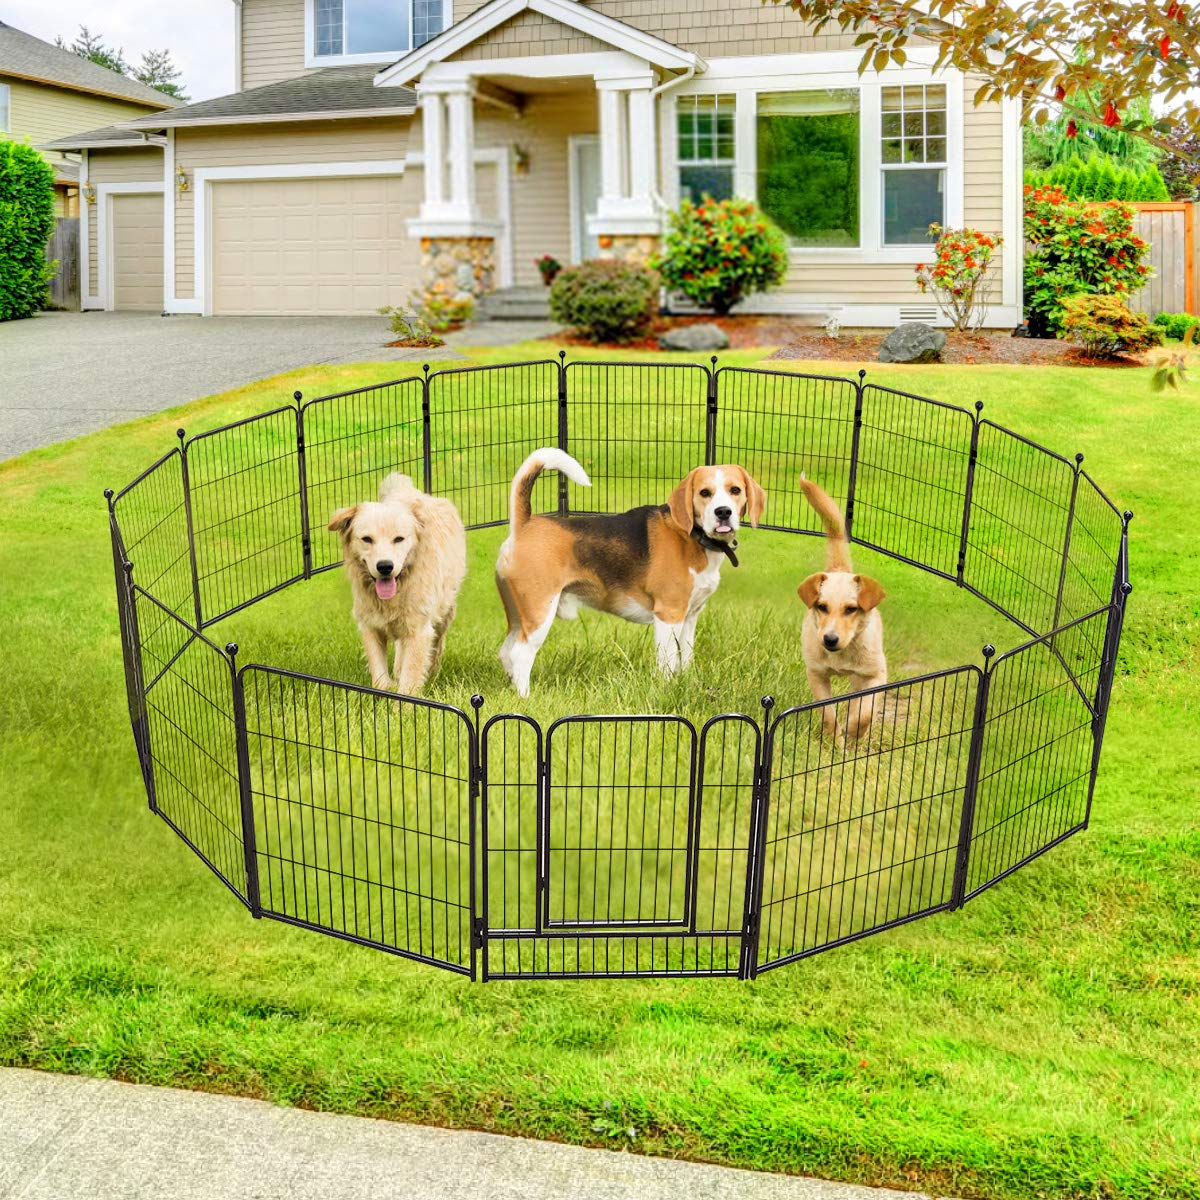 TOOCA Dog Pen RV Dog Fence Playpens for Dogs, 32H x 27L inches, 16 Panels, Heavy Duty, Metal, Outdoor Indoor, Protect Design Poles, Foldable Barrier with Door, Black